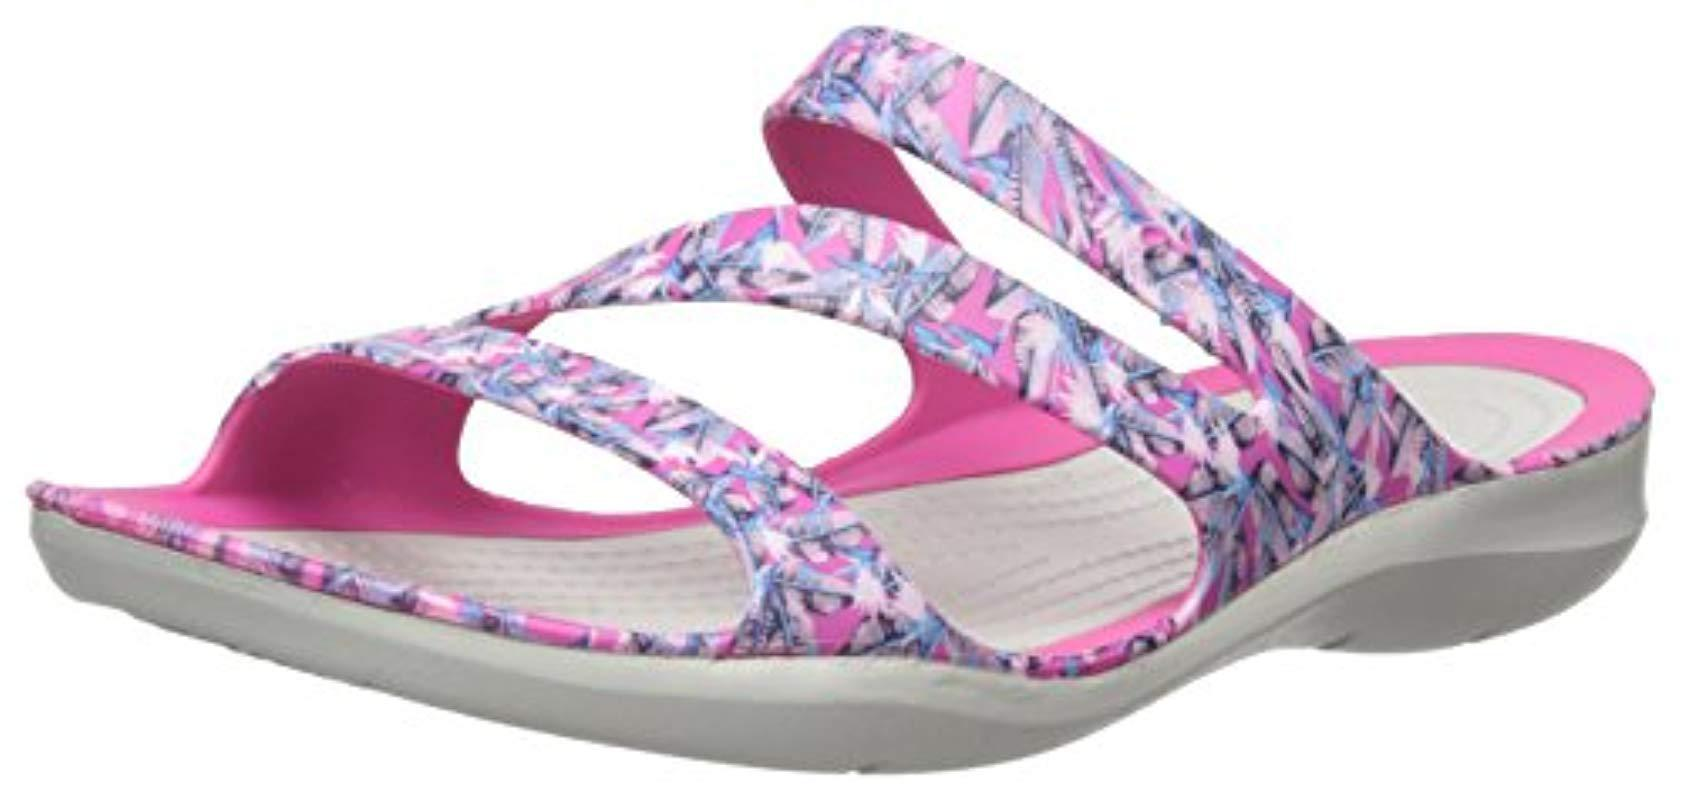 faf857ee18b5c7 Lyst - Crocs™ Swiftwater Graphic Sandal in Pink - Save ...